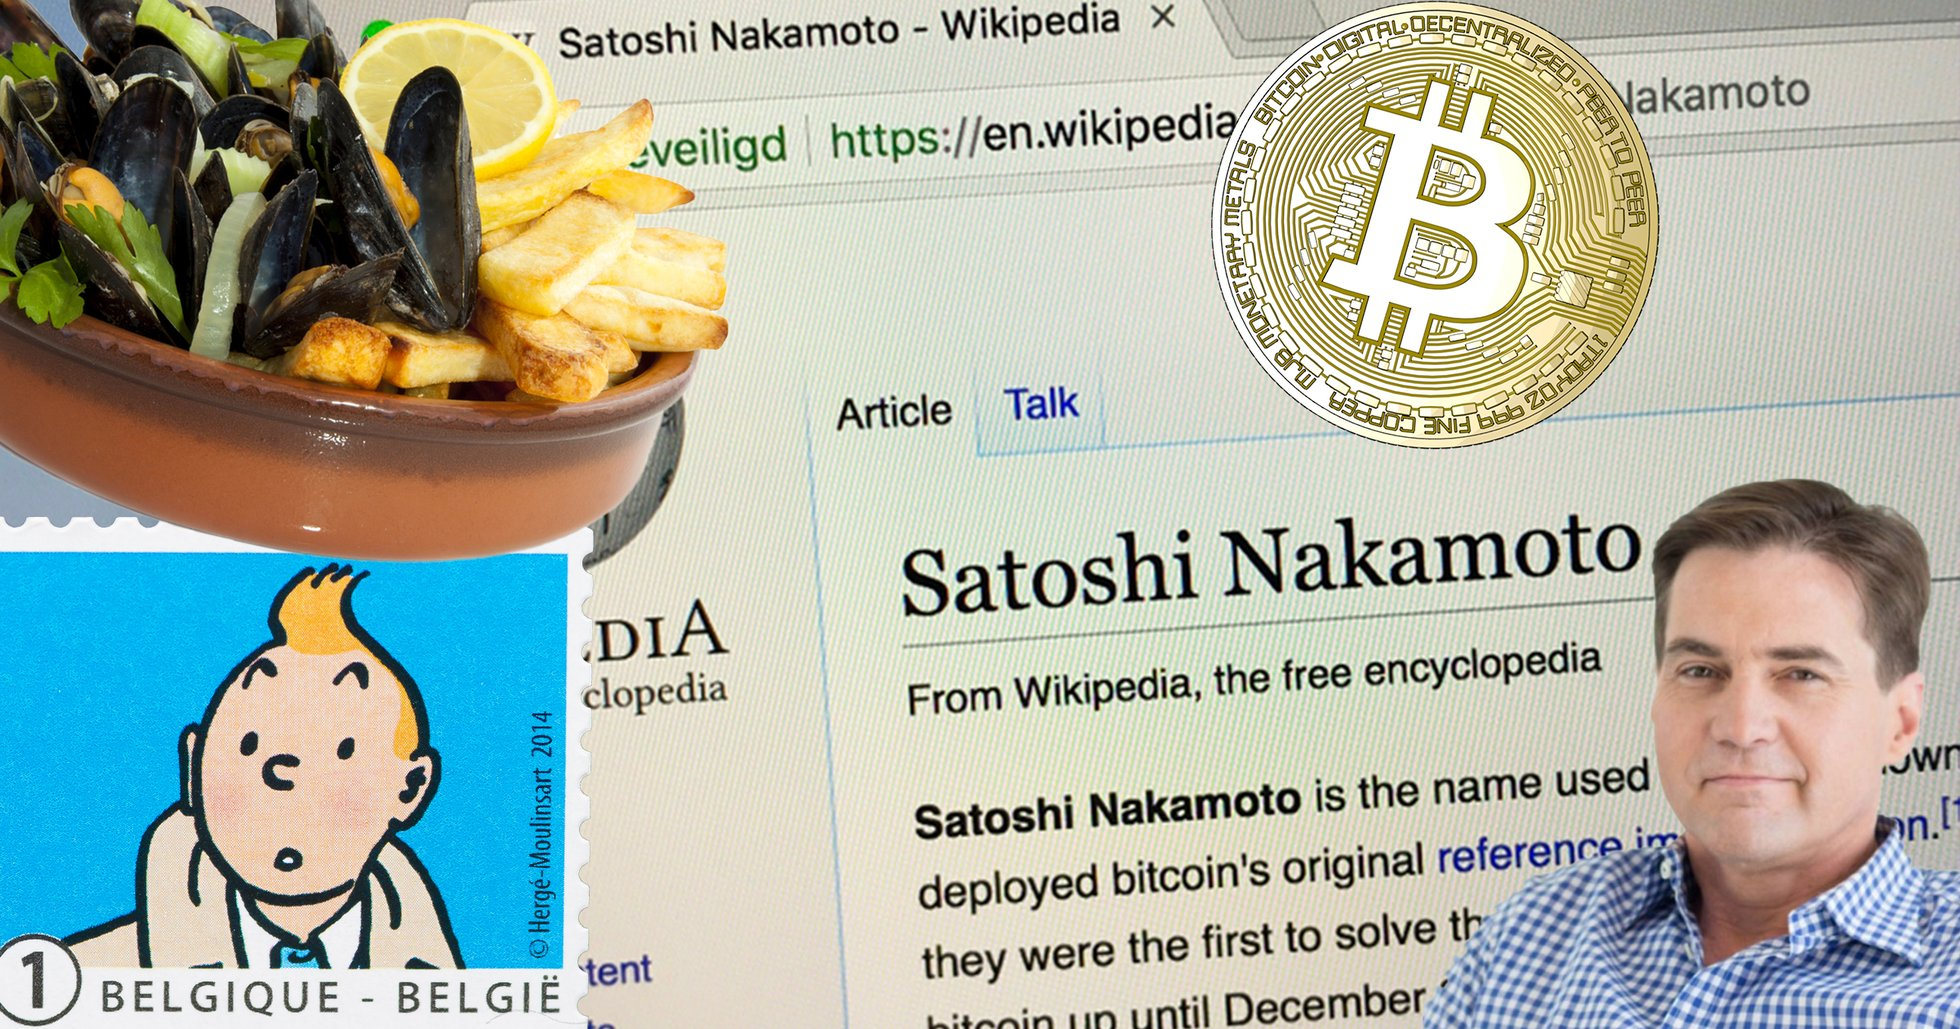 Turn of events in the Craig Wright trial: Belgian man claims to be Satoshi Nakamoto